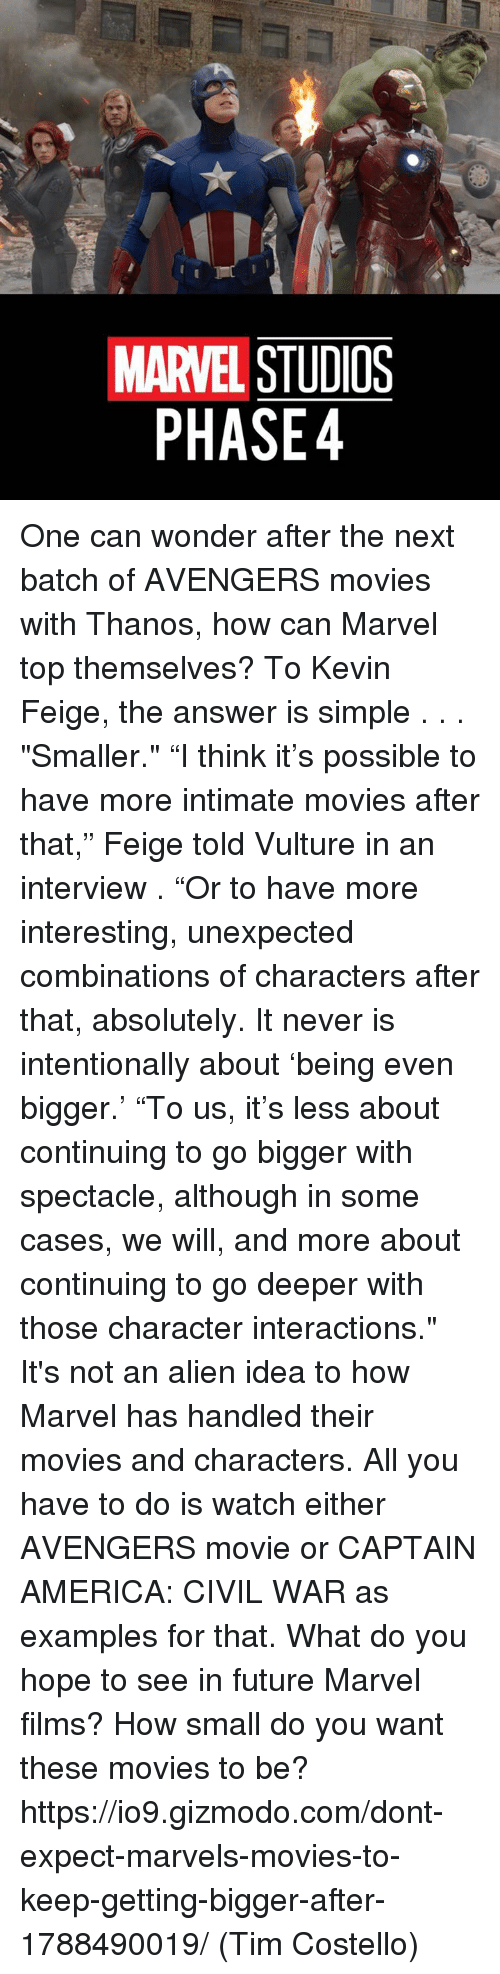 """spectacles: MARVEL STUDIOS  PHASE4 One can wonder after the next batch of AVENGERS movies with Thanos, how can Marvel top themselves? To Kevin Feige, the answer is simple . . . """"Smaller.""""  """"I think it's possible to have more intimate movies after that,"""" Feige told Vulture in an interview . """"Or to have more interesting, unexpected combinations of characters after that, absolutely. It never is intentionally about 'being even bigger.' """"To us, it's less about continuing to go bigger with spectacle, although in some cases, we will, and more about continuing to go deeper with those character interactions.""""  It's not an alien idea to how Marvel has handled their movies and characters. All you have to do is watch either AVENGERS movie or CAPTAIN AMERICA: CIVIL WAR as examples for that.  What do you hope to see in future Marvel films? How small do you want these movies to be?  https://io9.gizmodo.com/dont-expect-marvels-movies-to-keep-getting-bigger-after-1788490019/  (Tim Costello)"""